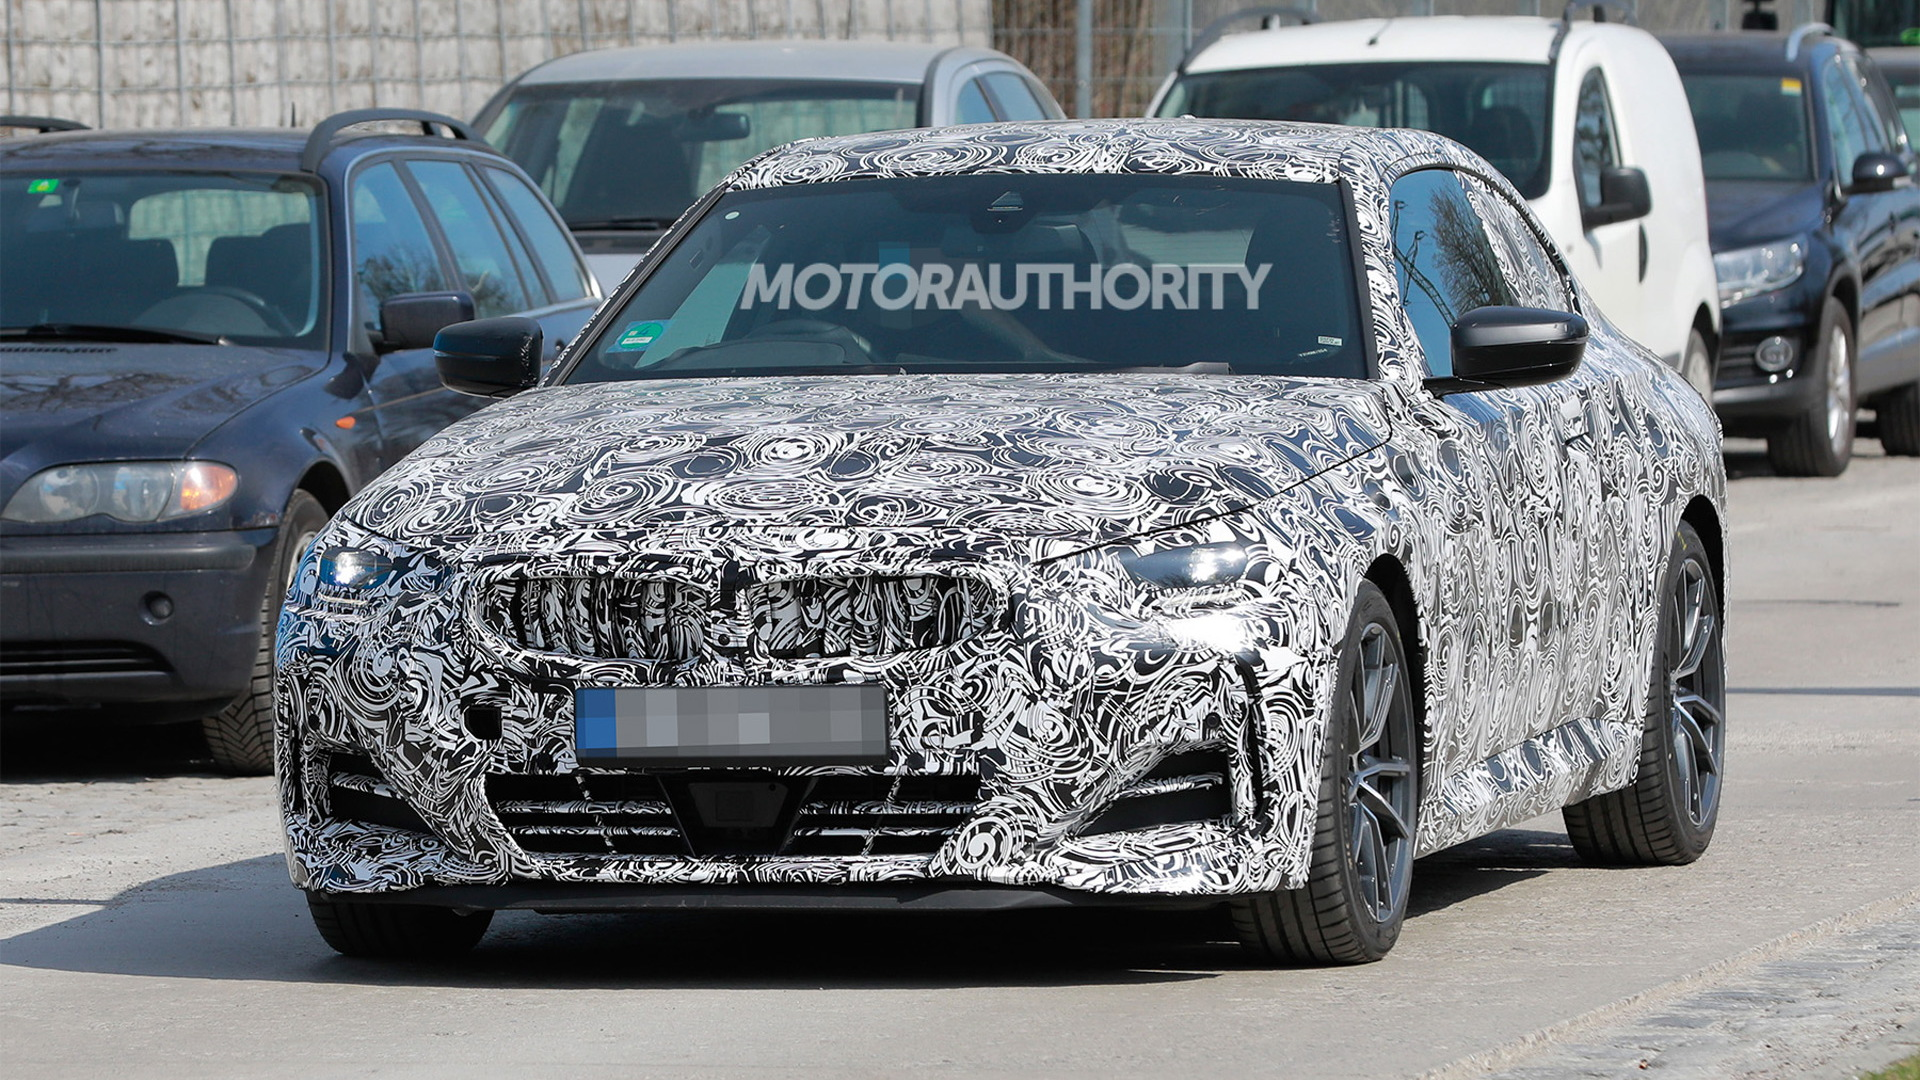 2022 BMW 2-Series spy shots - Photo credit: S. Baldauf/SB-Medien